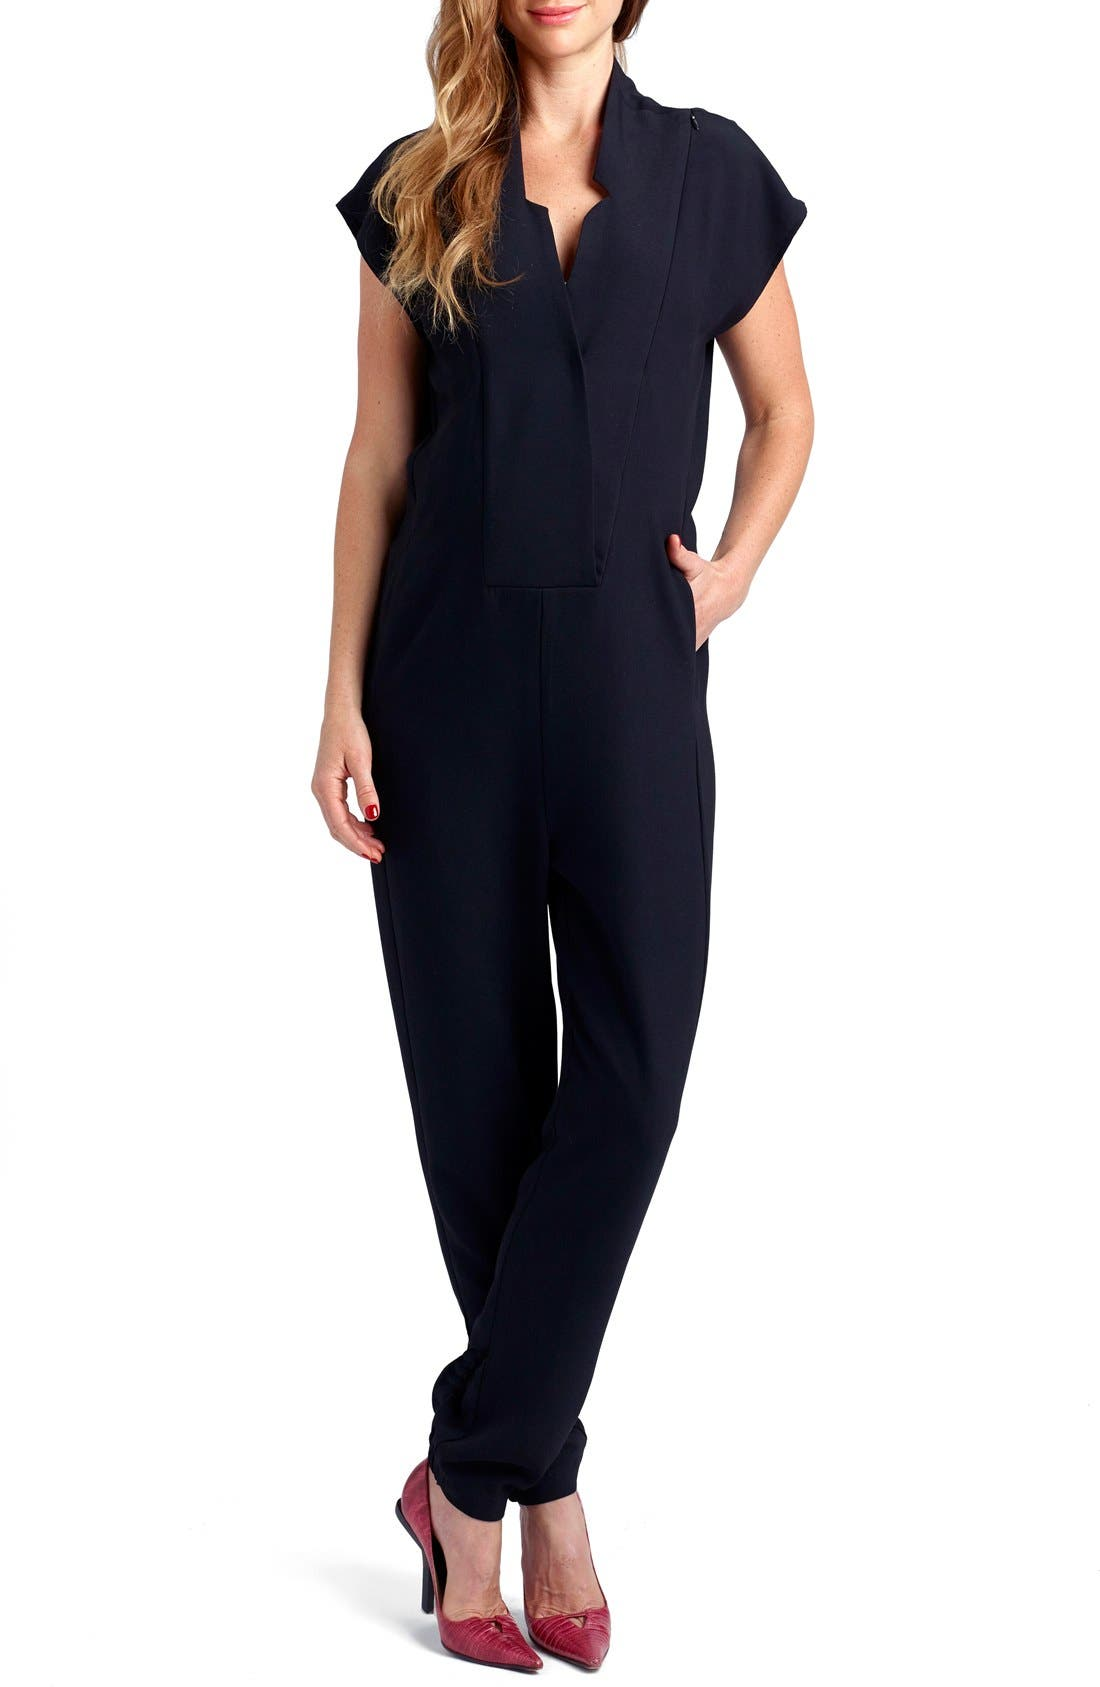 Alternate Image 1 Selected - Loyal Hana 'Celia' Short Sleeve Maternity Jumpsuit